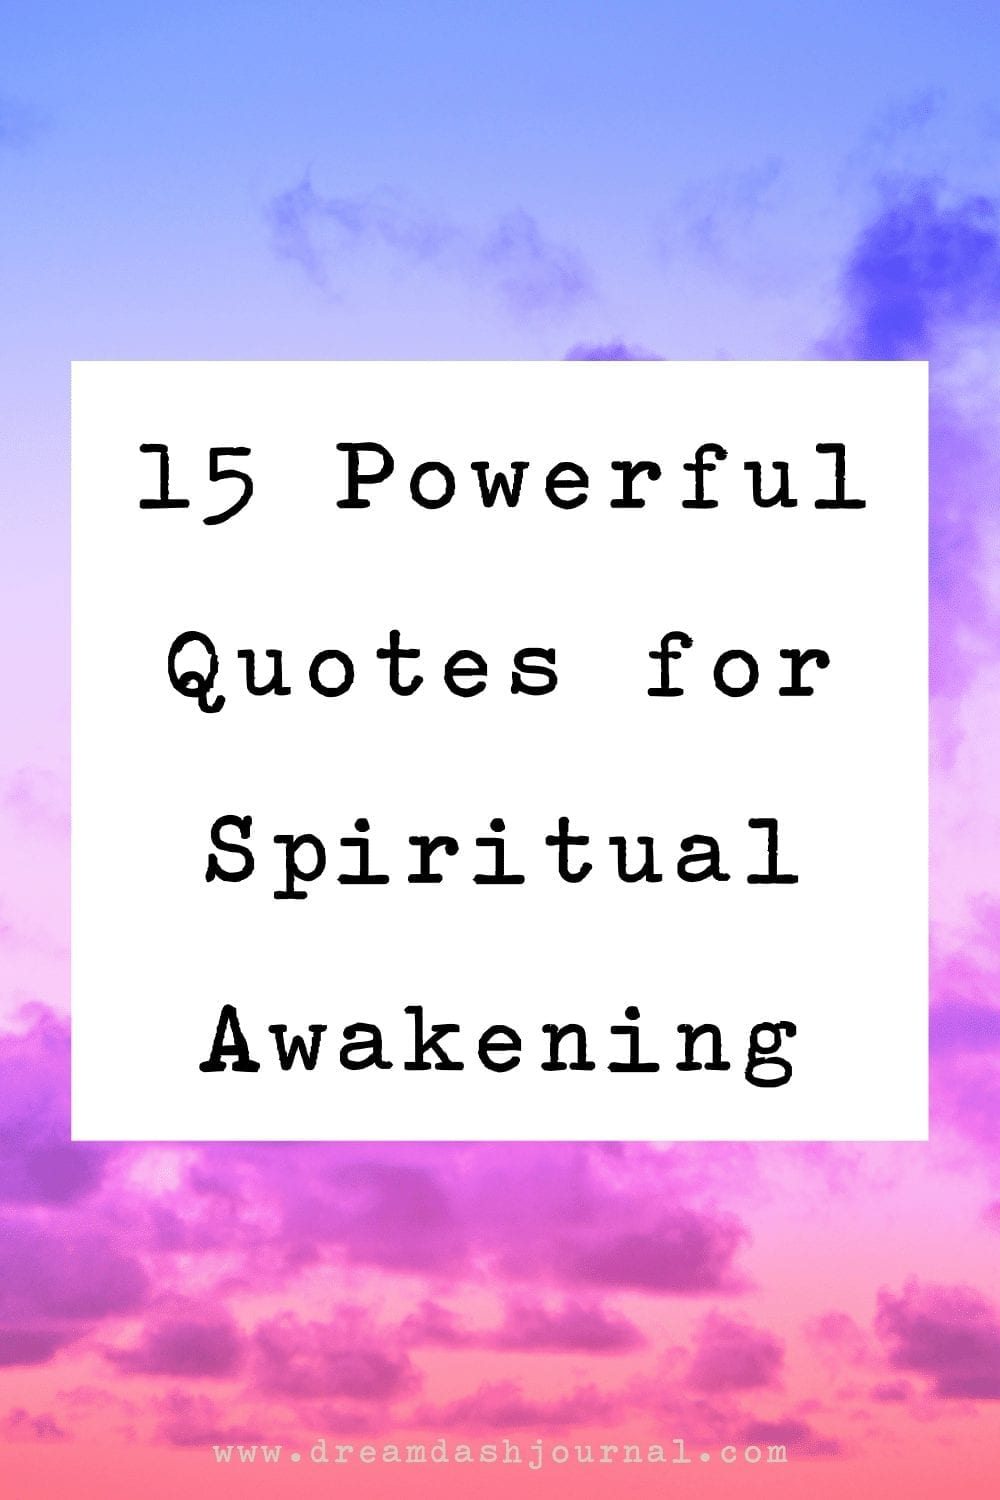 15 Spiritual Awakening Quotes- Images and Sayings for Spiritual Enlightenment